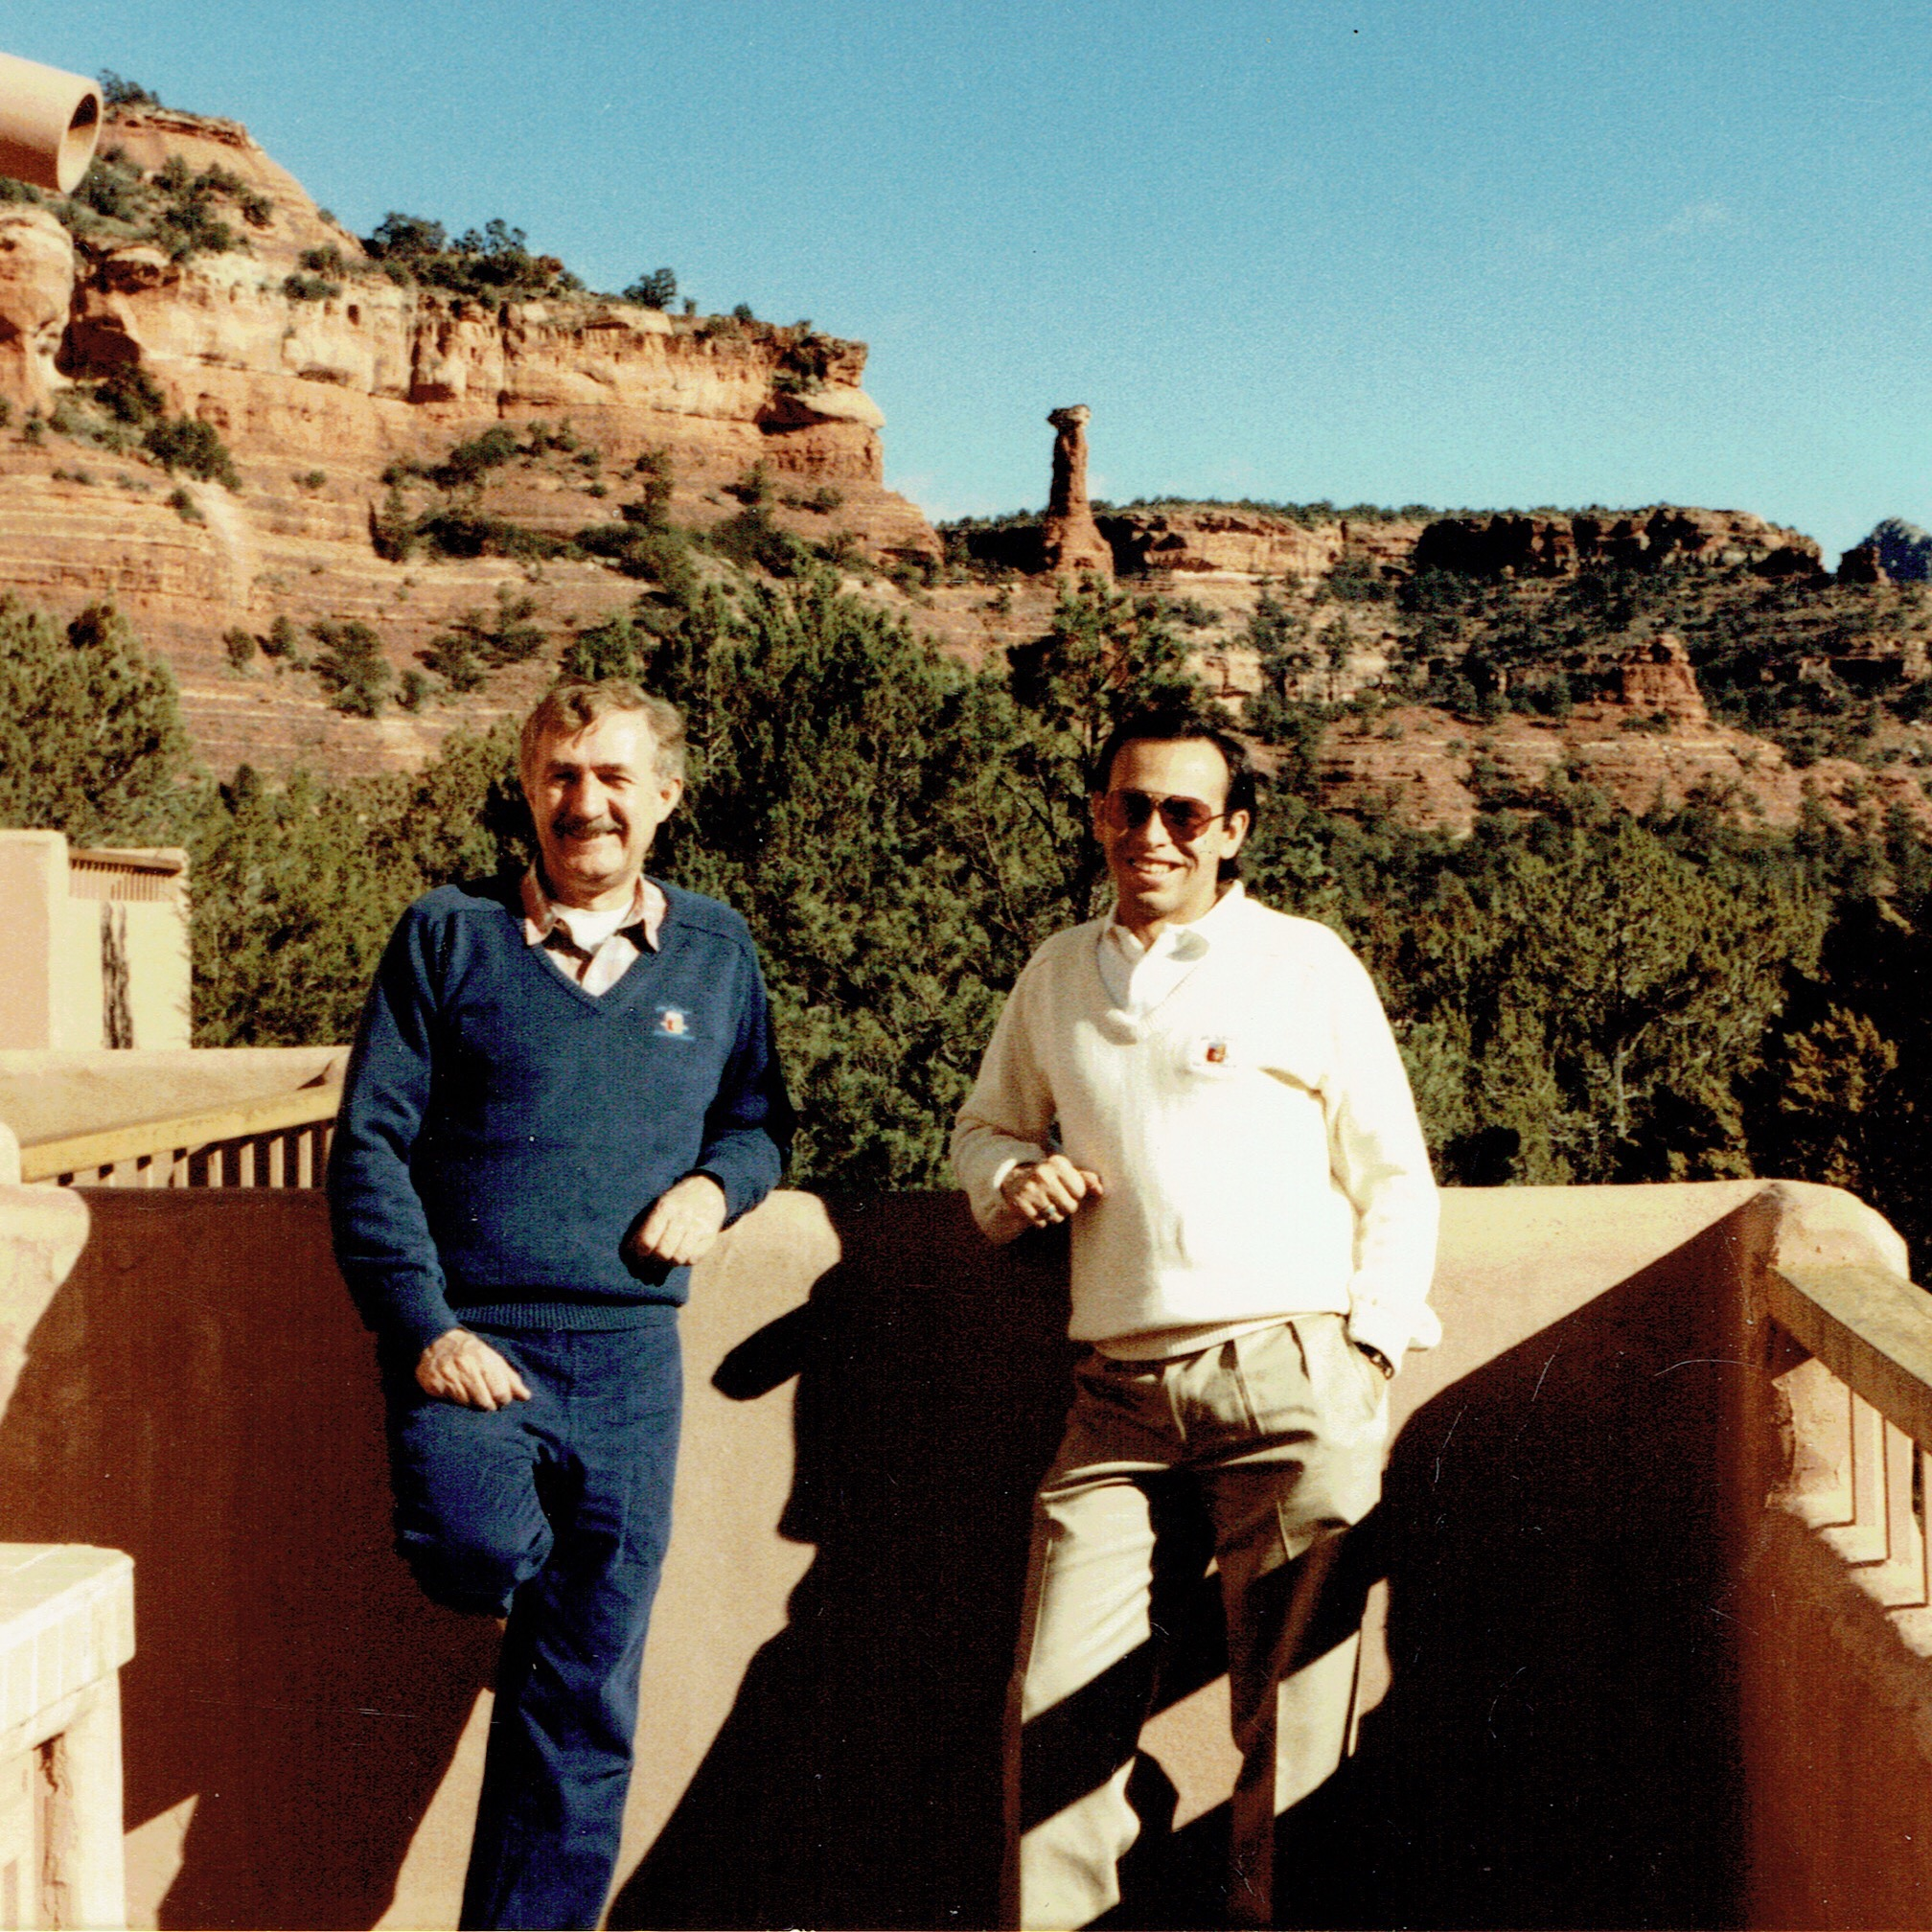 My mentor, the late George W. Christensen, and I at our Enchantment Resort circa 1987